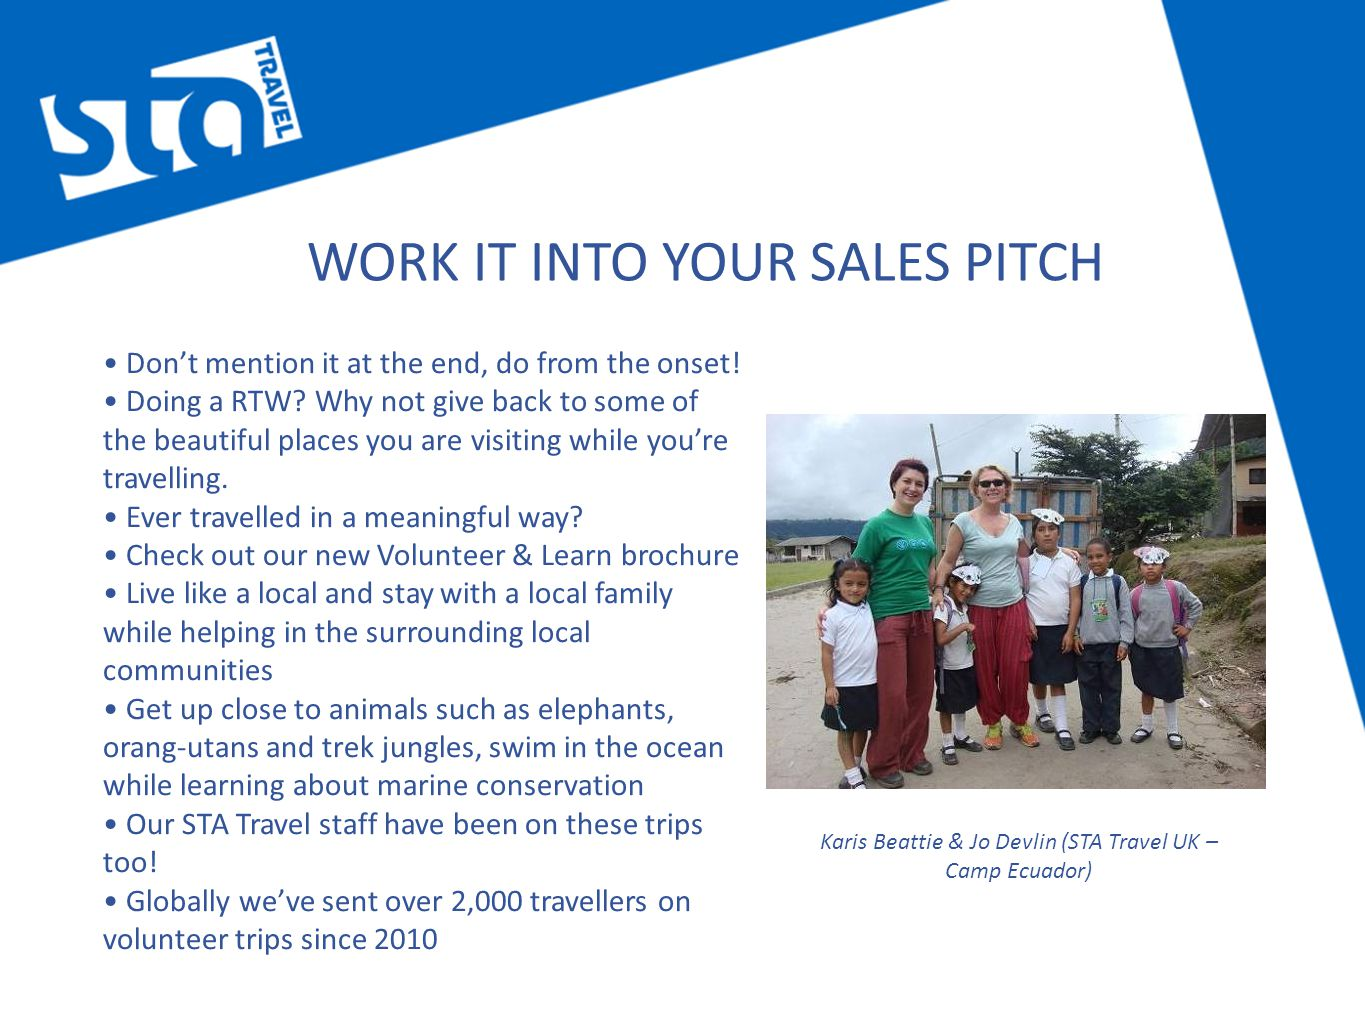 WORK IT INTO YOUR SALES PITCH Don't mention it at the end, do from the onset.